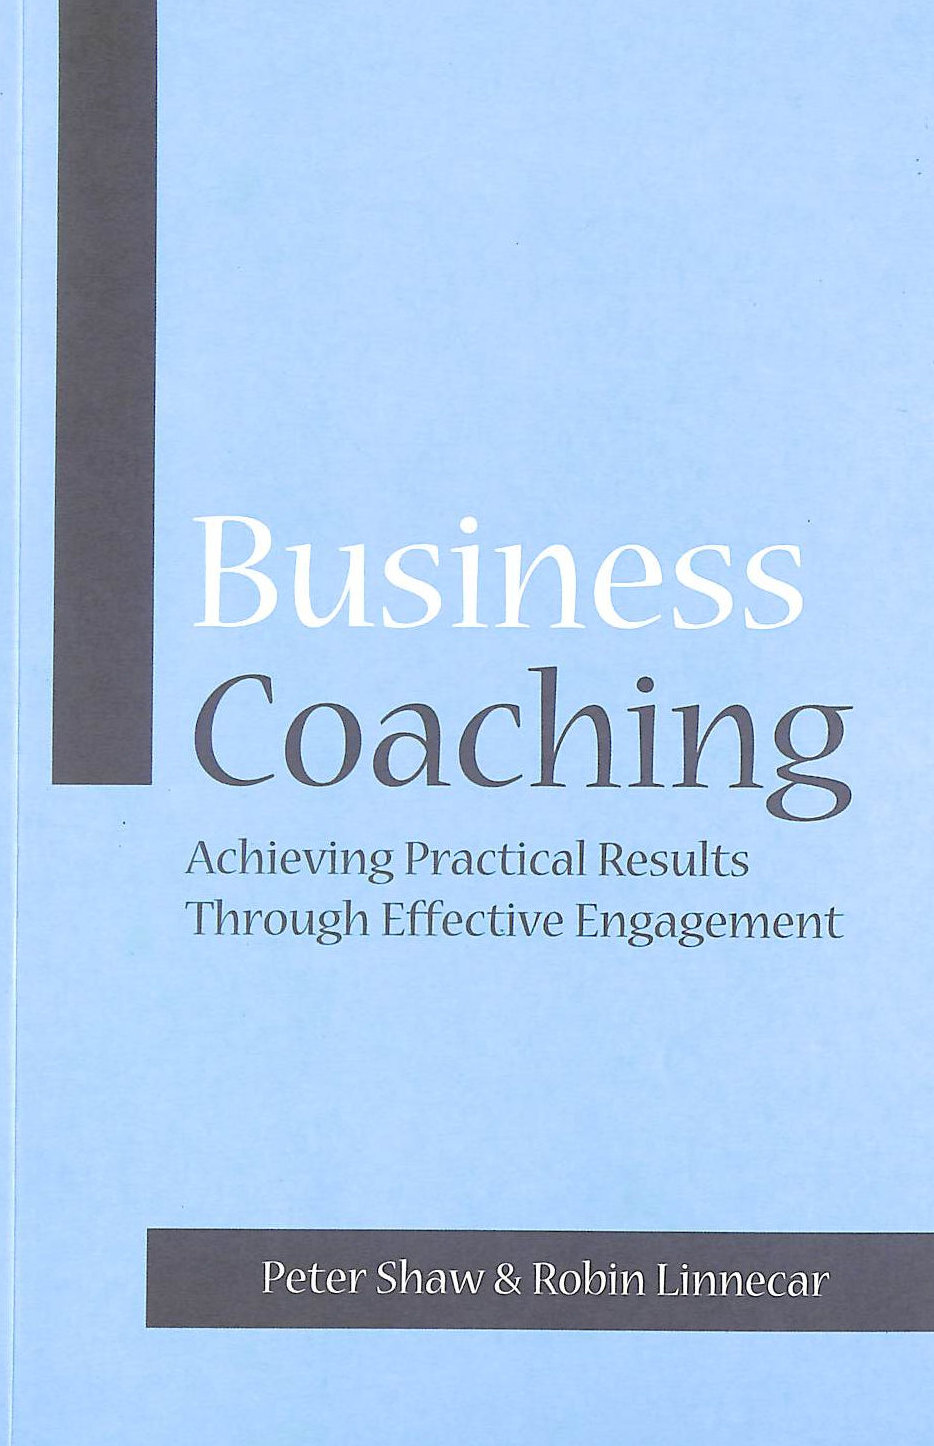 Image for Business Coaching: Achieving Practical Results Through Effective Engagement